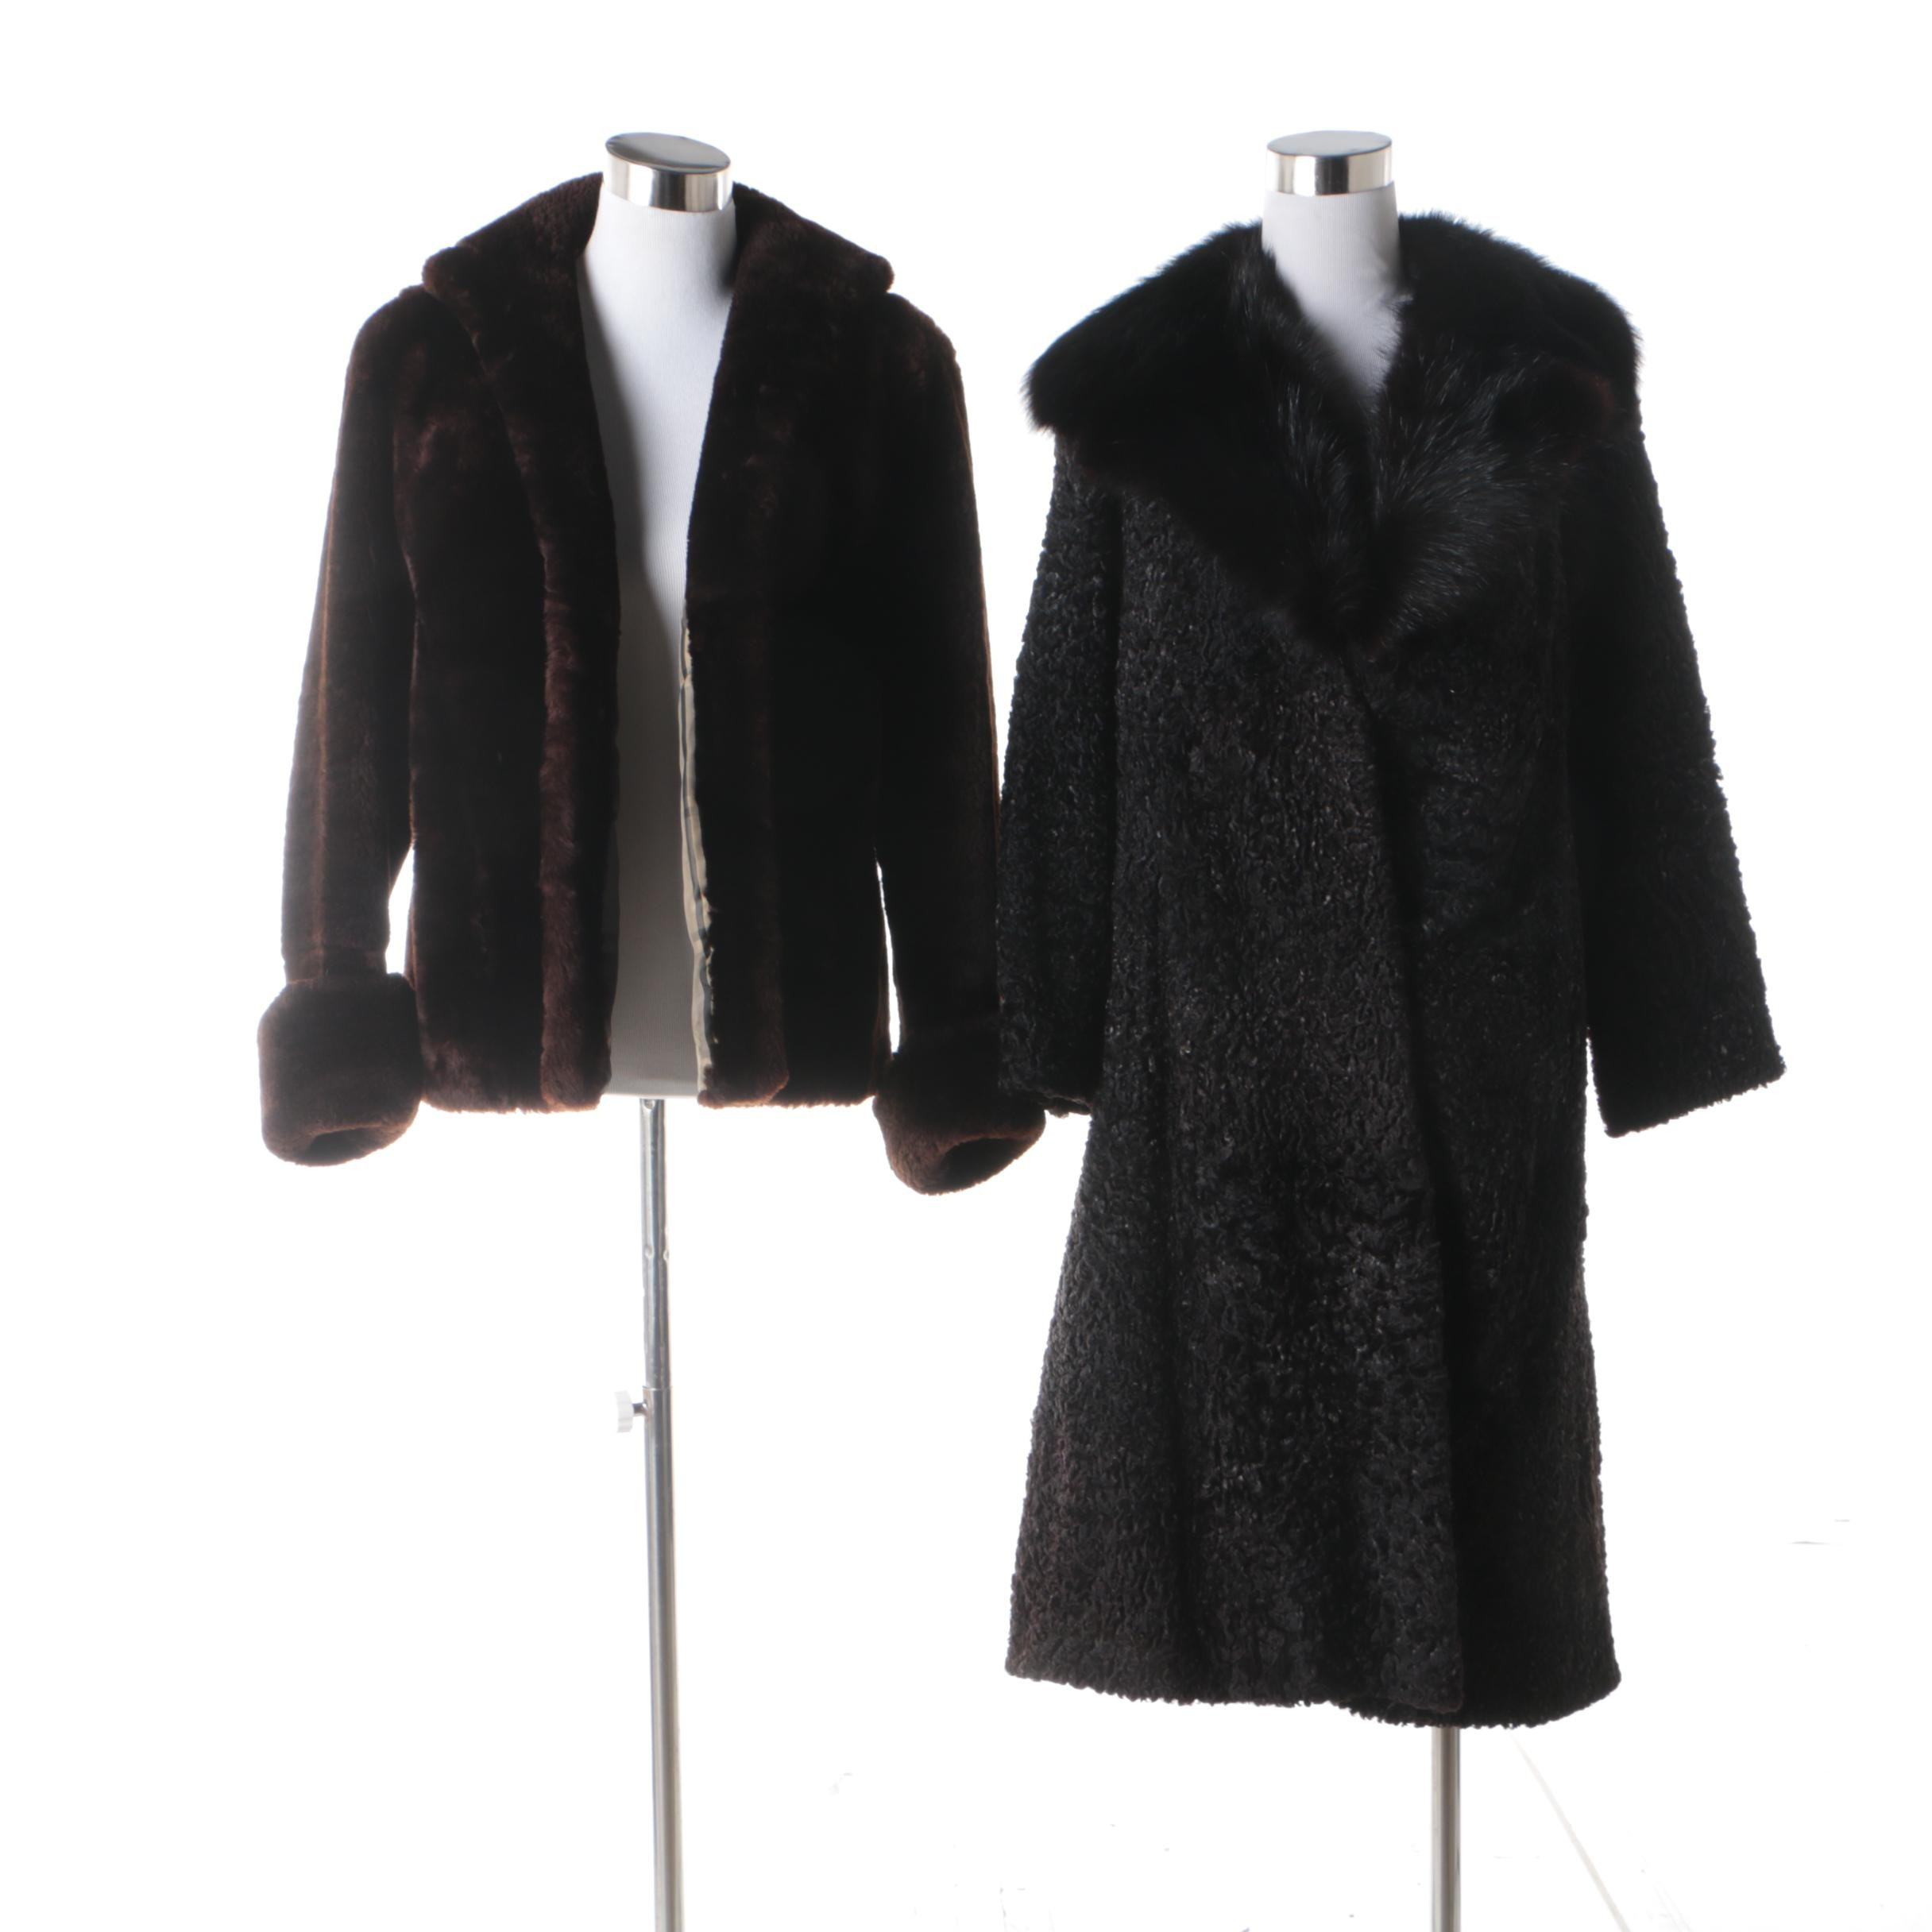 Brown Mouton Fur Jacket and Black Faux Persian Lamb Fur Coat with Fox Fur Collar